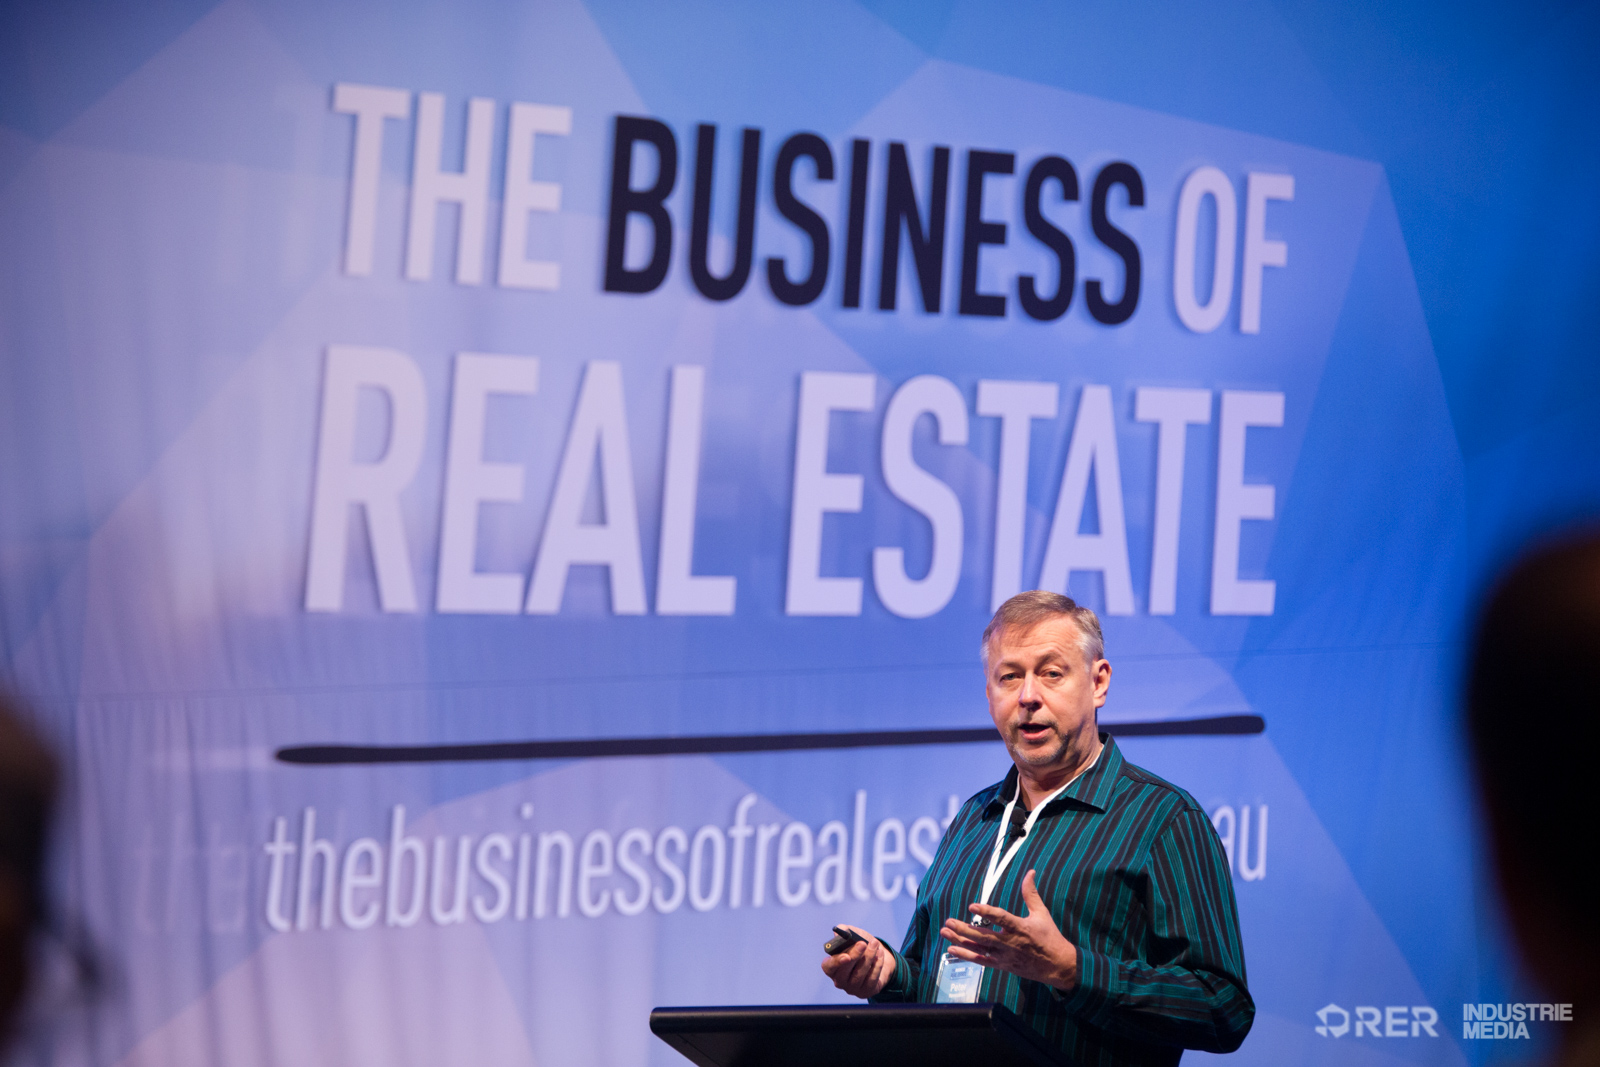 https://www.thebusinessofrealestate.com.au/wp-content/uploads/2016/09/RER_BUSINESS_OF_REAL_ESTATE-32.jpg